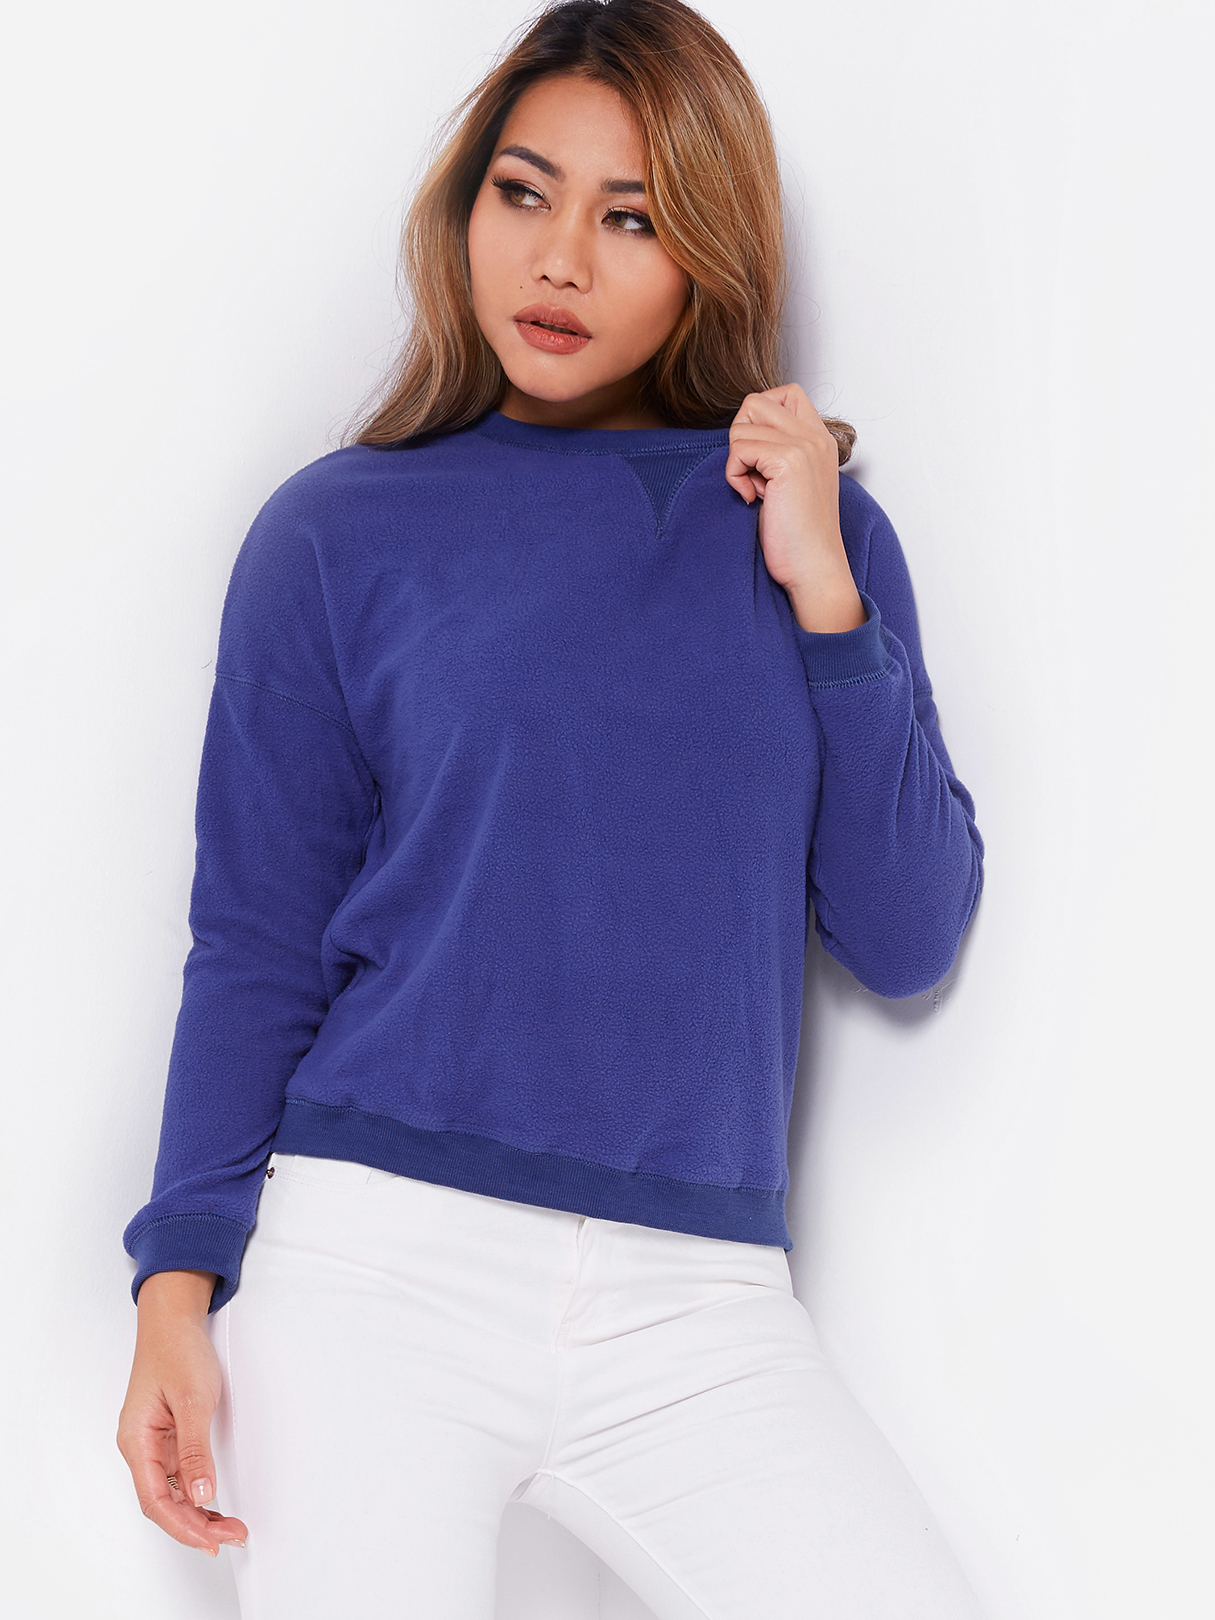 Blue Round Neck Long Sleeves Casual Sweatshirt